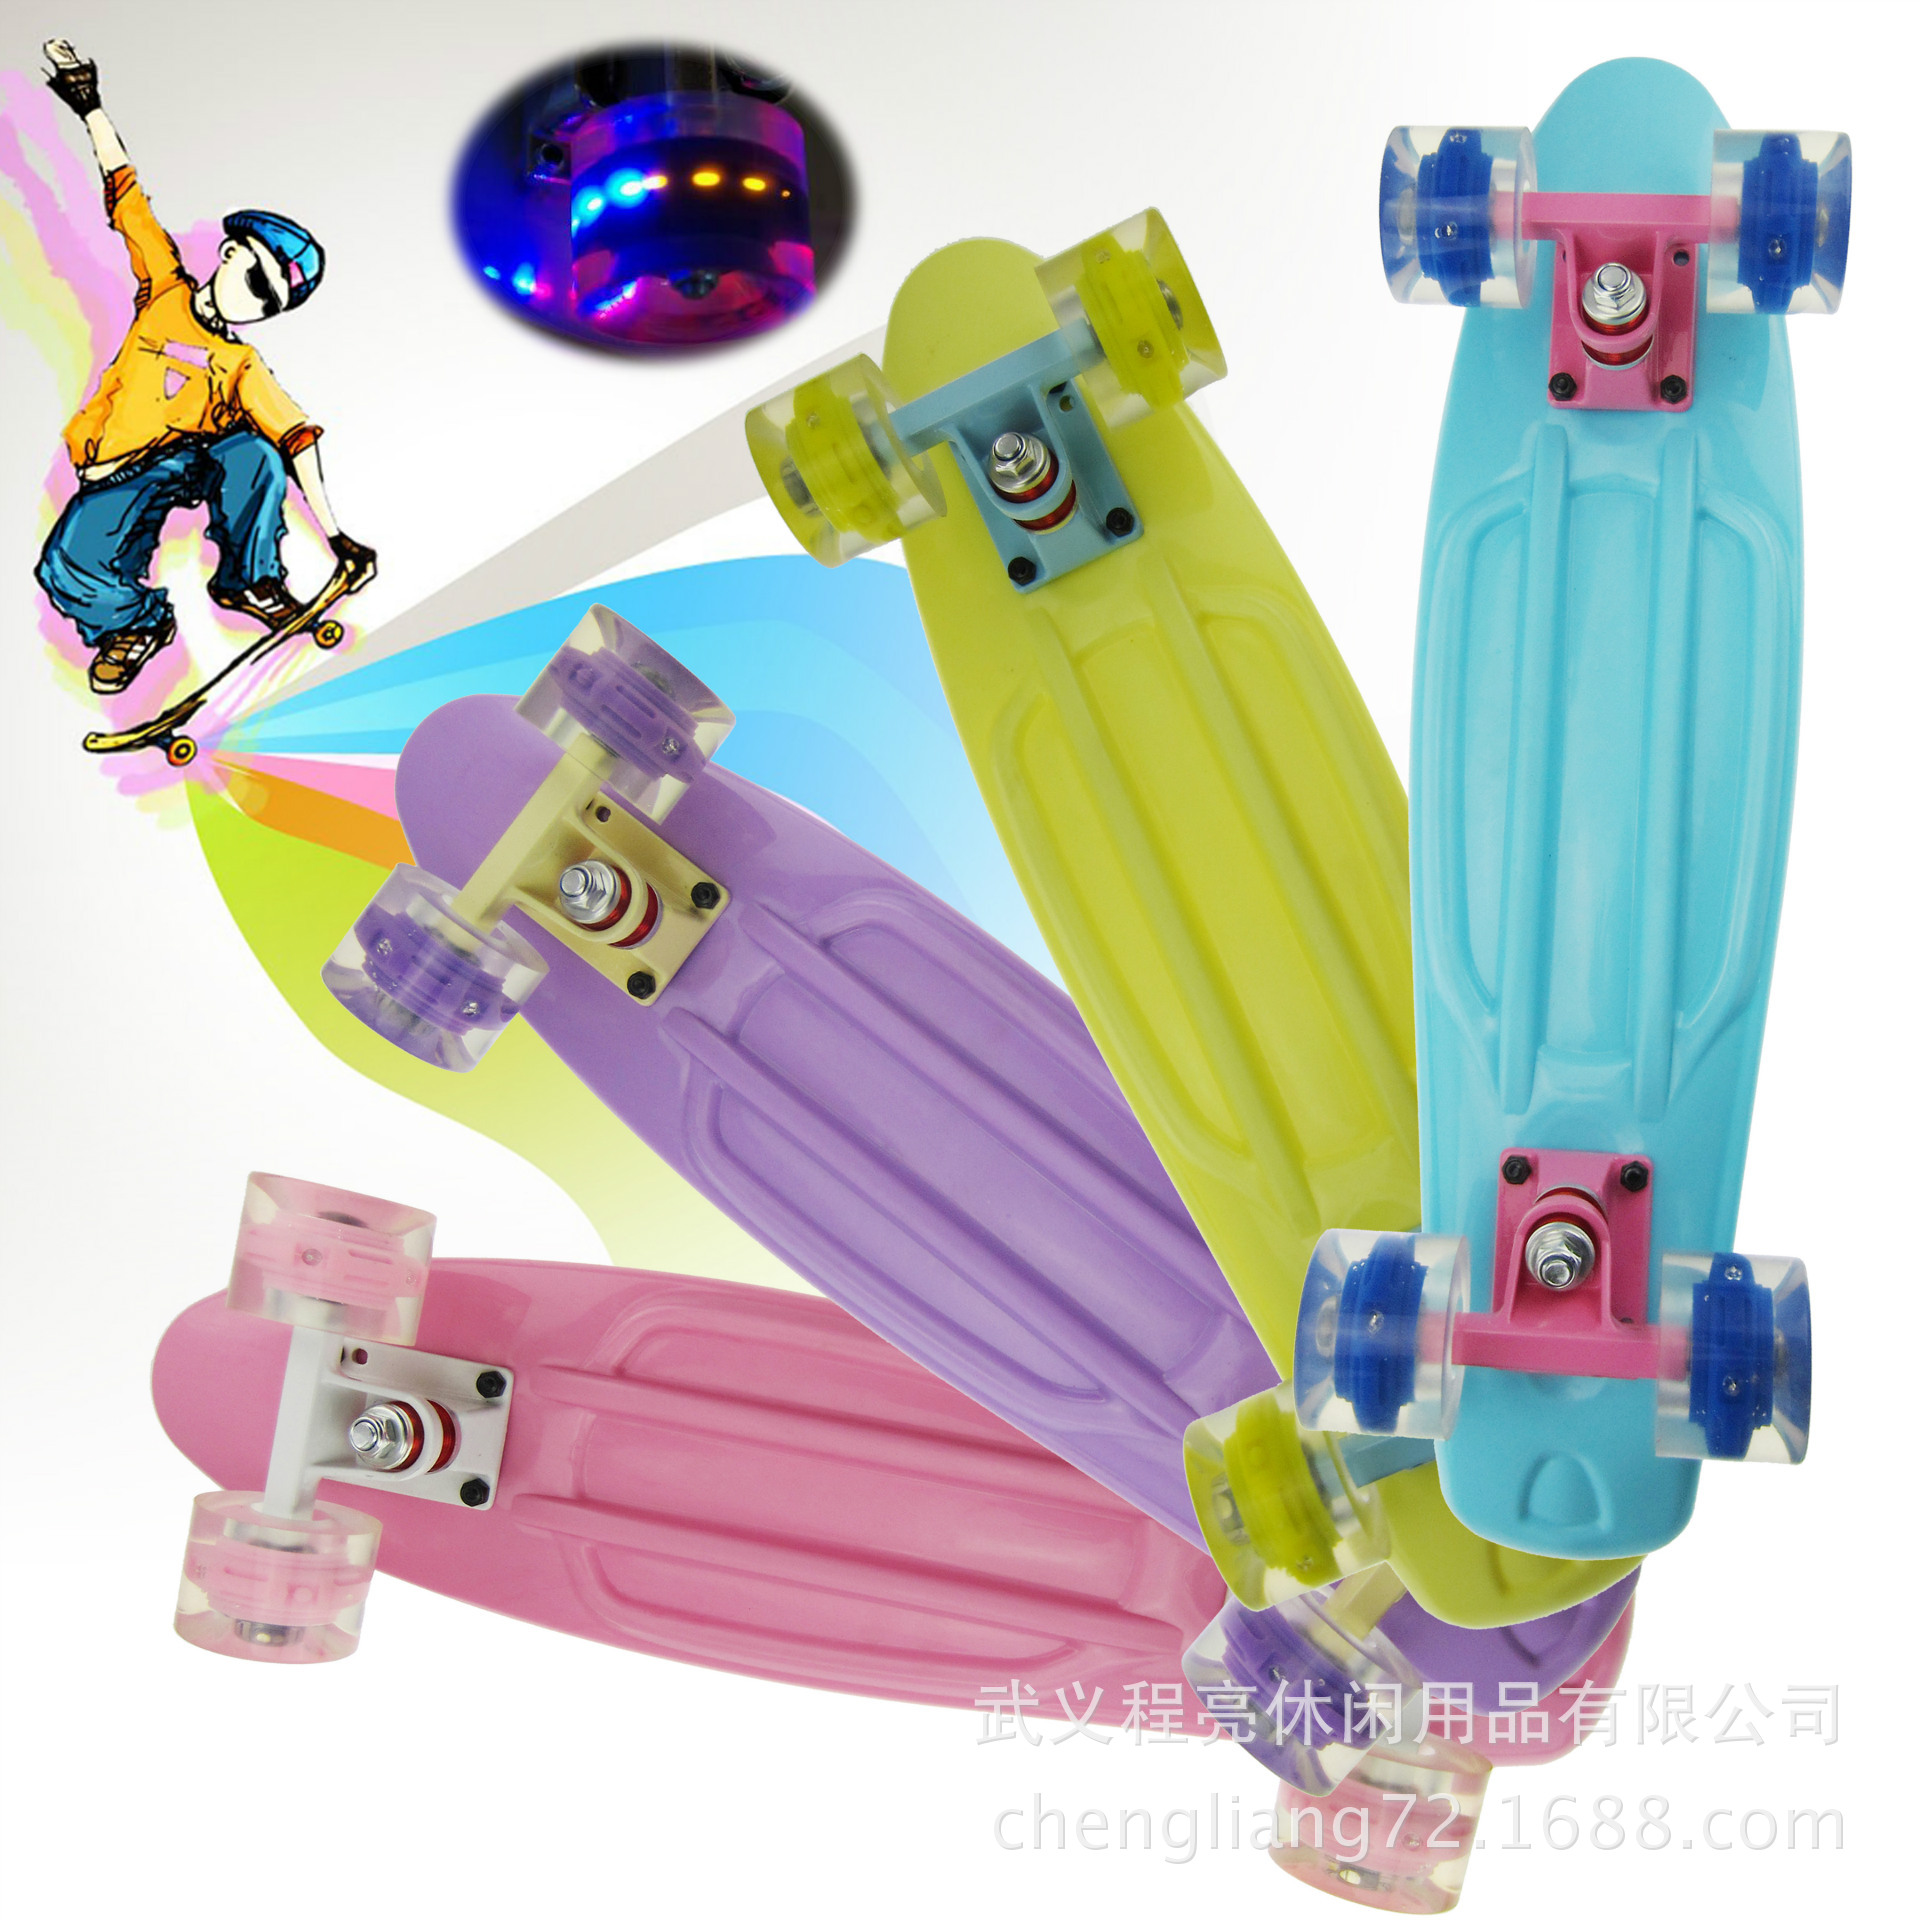 Four Wheel LED Flashing Wheel Fish Skateboard Skateboard Highway Scooter Adult